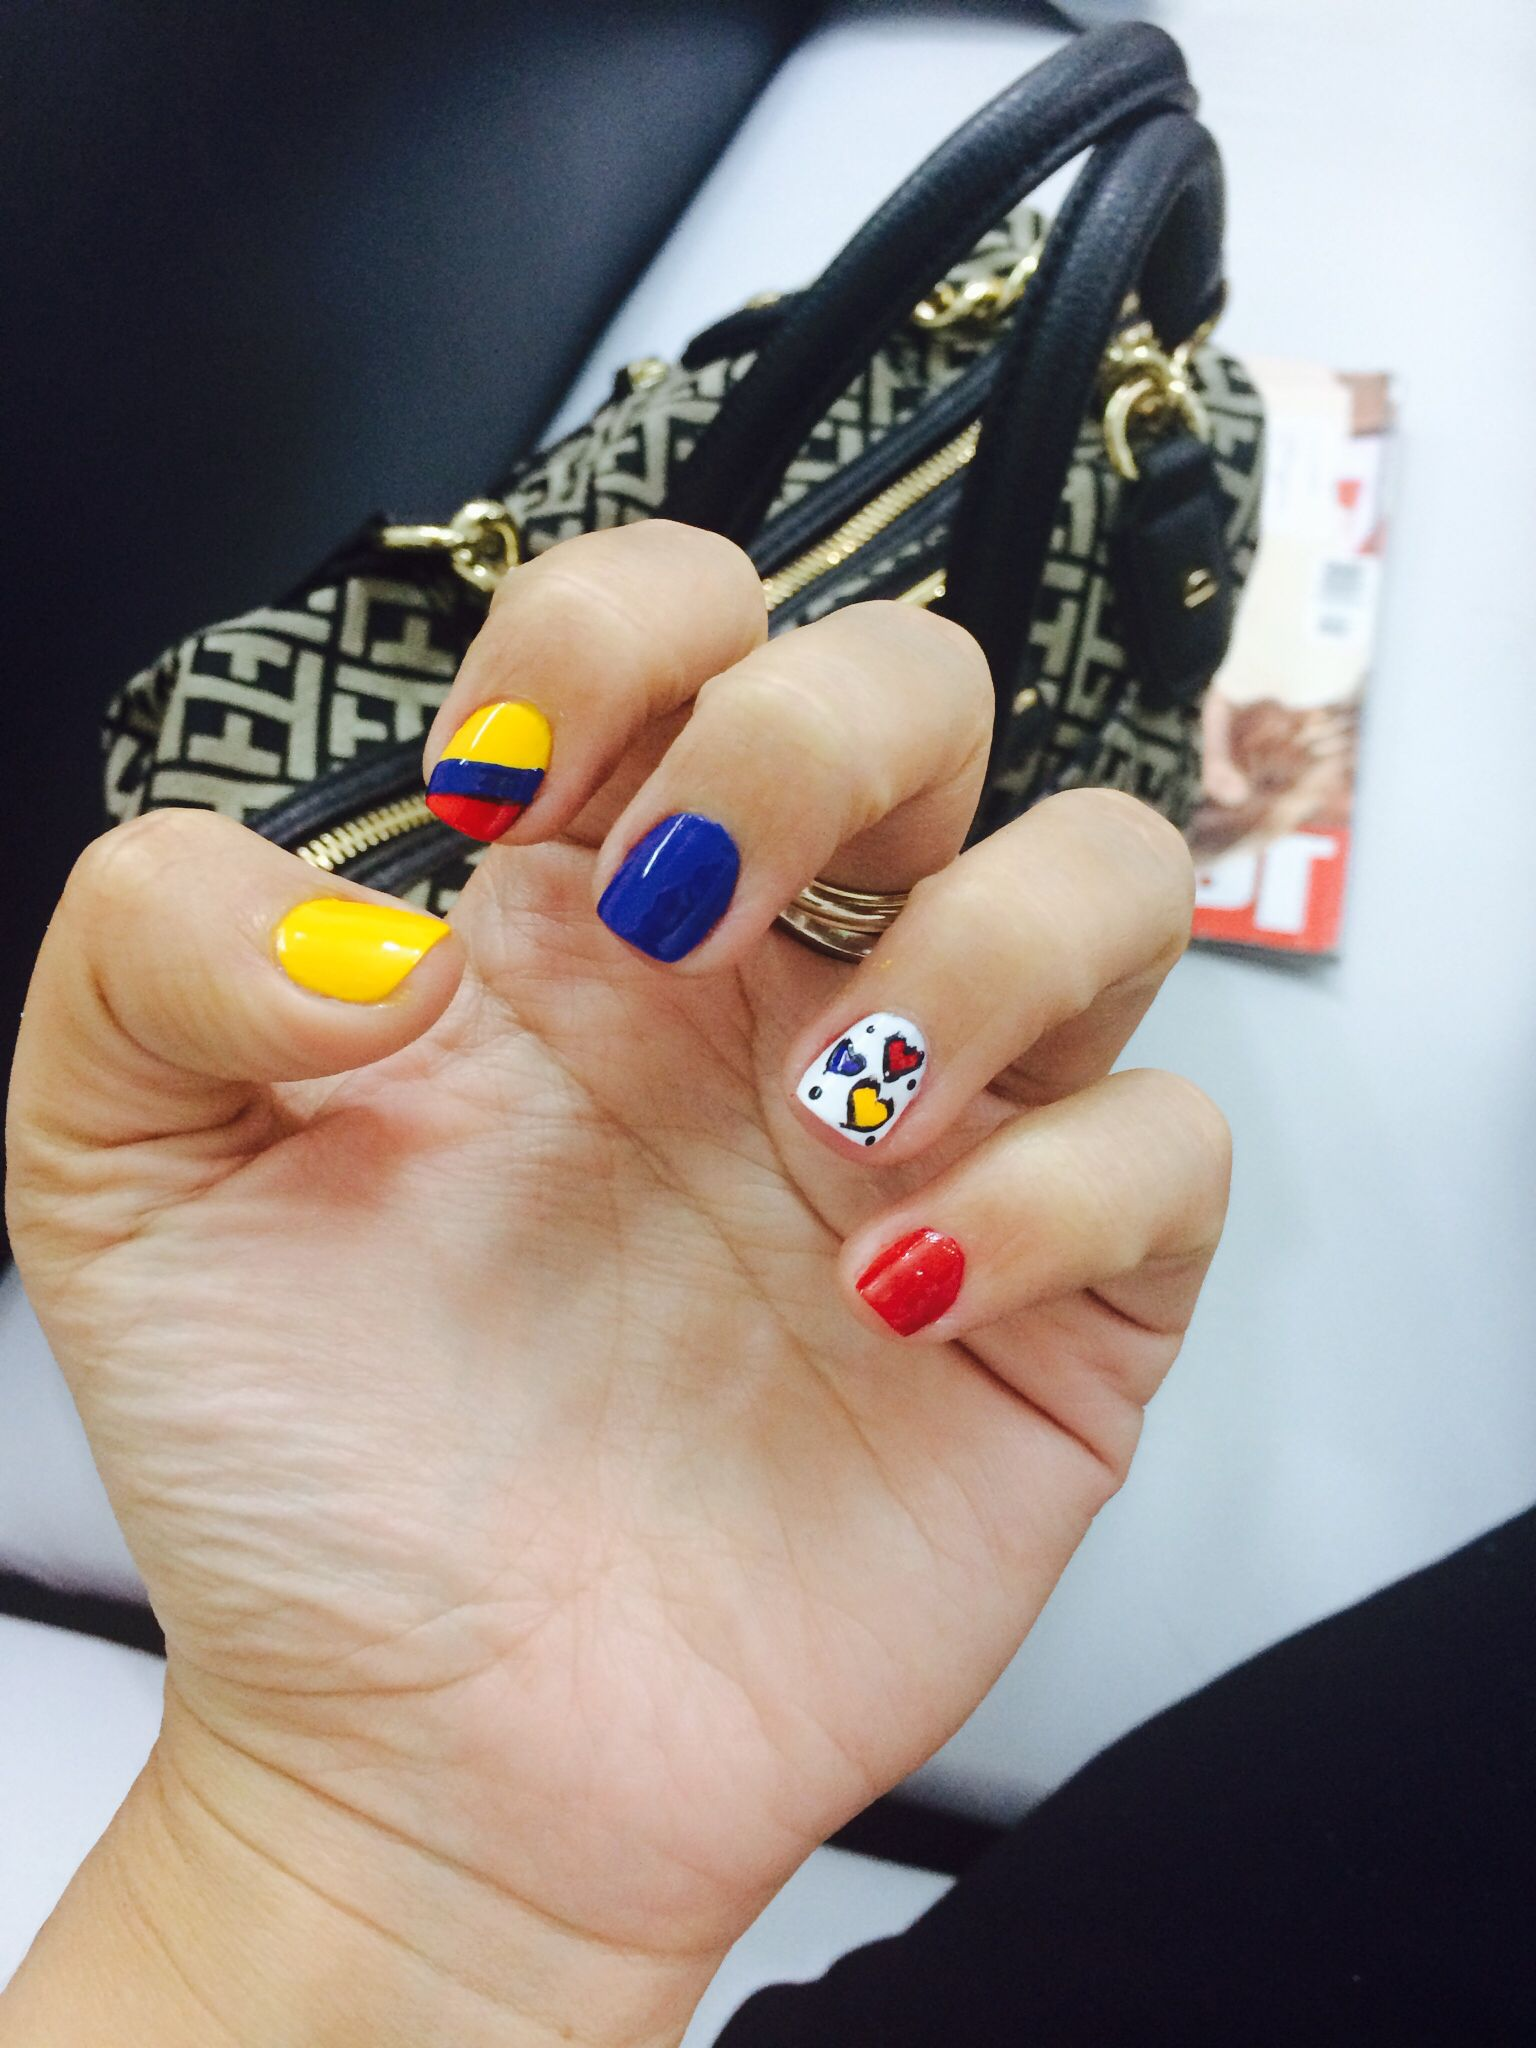 Uñas Colombia nails | Nails | Pinterest | Colombia, Manicure and ...